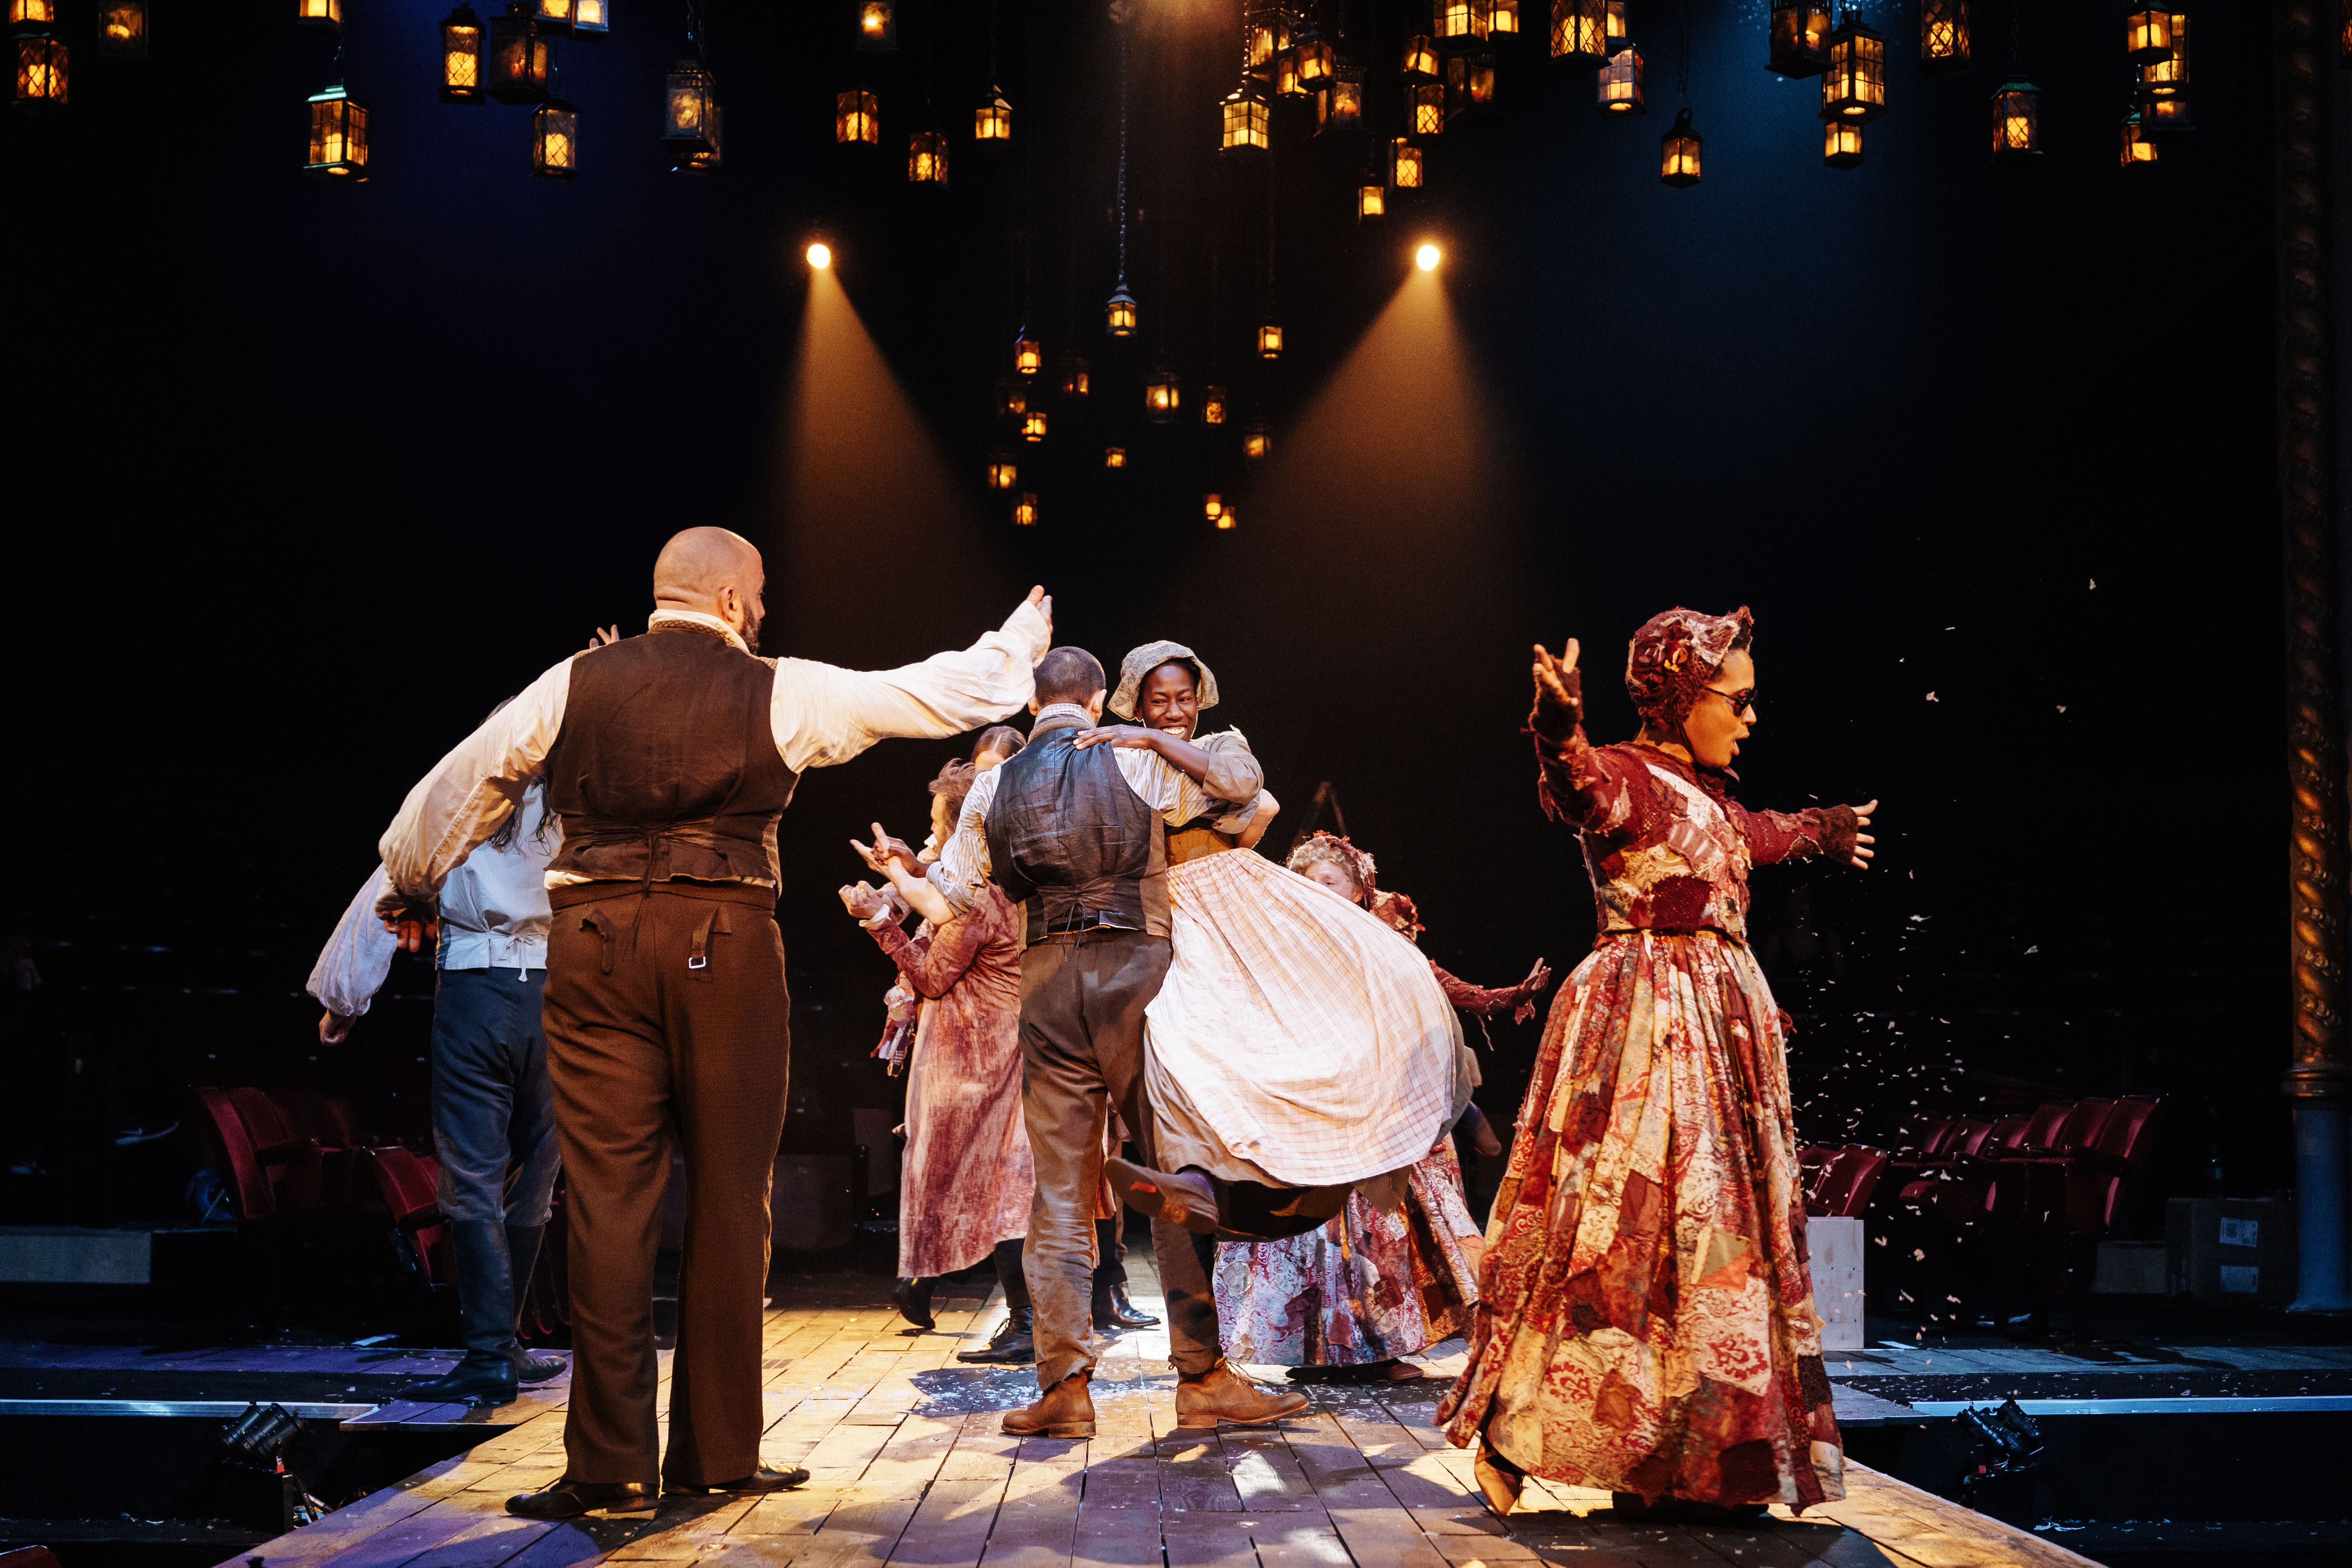 Cast Of A Christmas Carol.Cast Of A Christmas Carol At The Old Vic Photos By Manuel